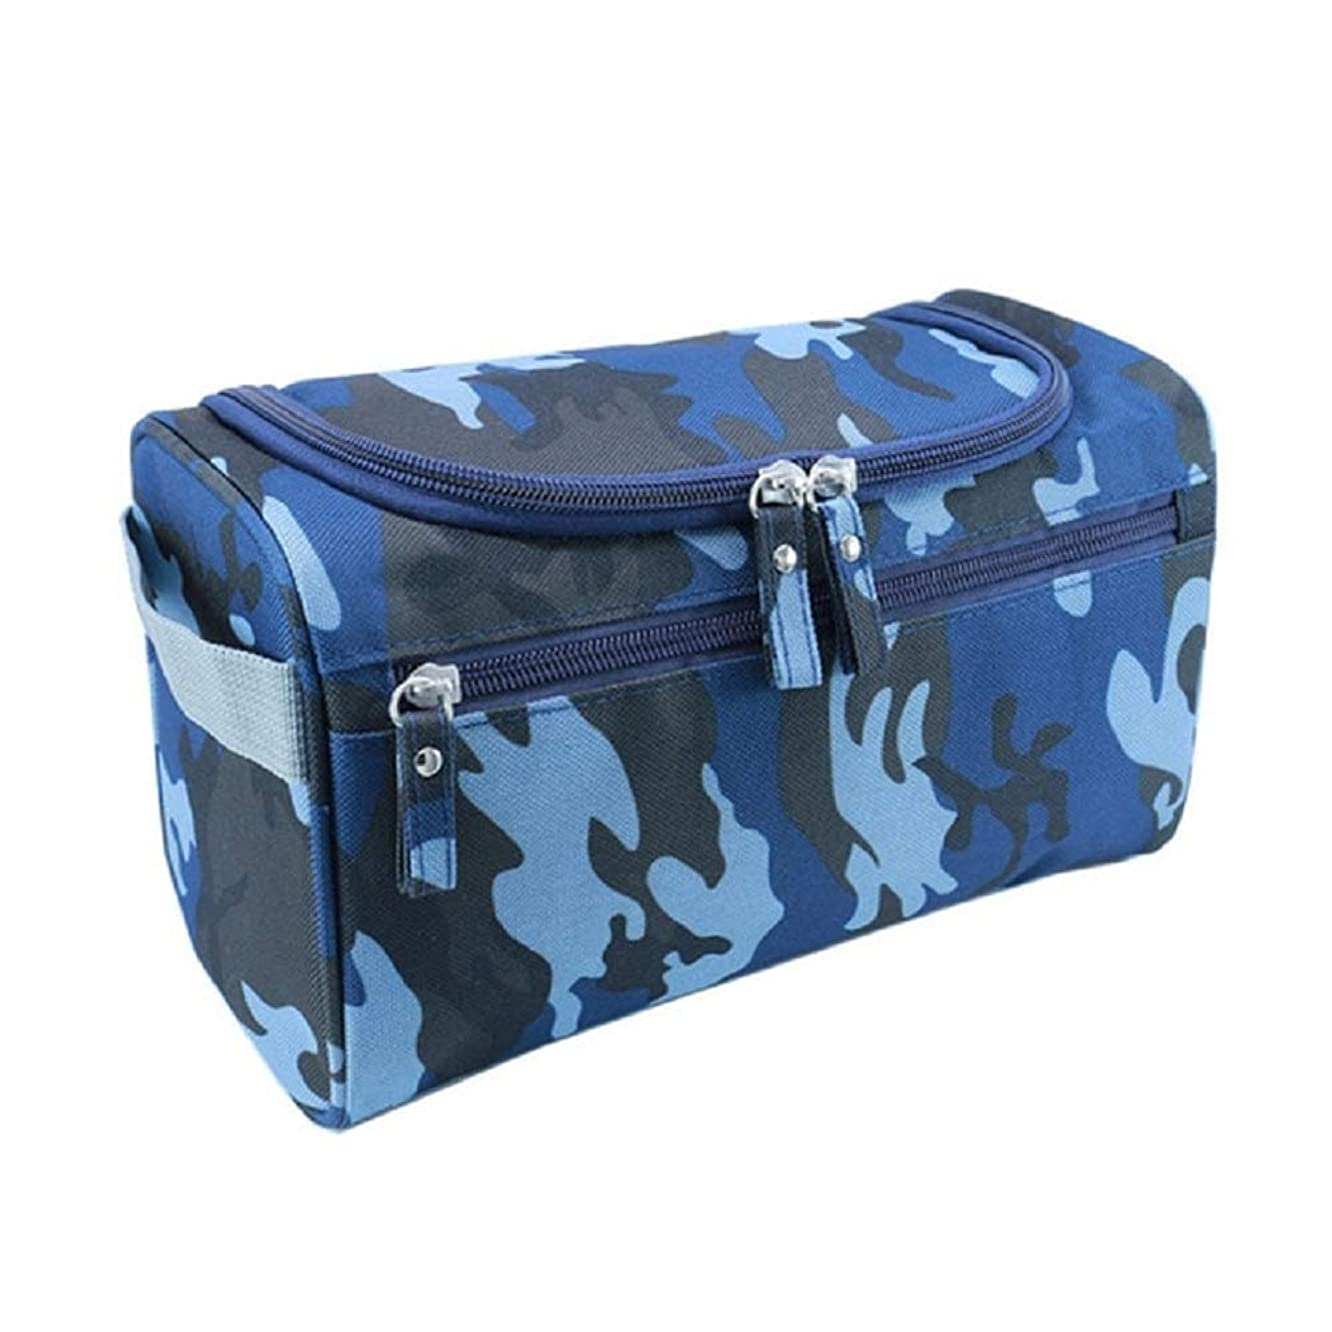 Hanging Toiletry Bag Nylon Travel Organizer Cosmetic Bag For Women Large Necessaries Make Up Case Wash Makeup Bag (Navy CamouFlage)